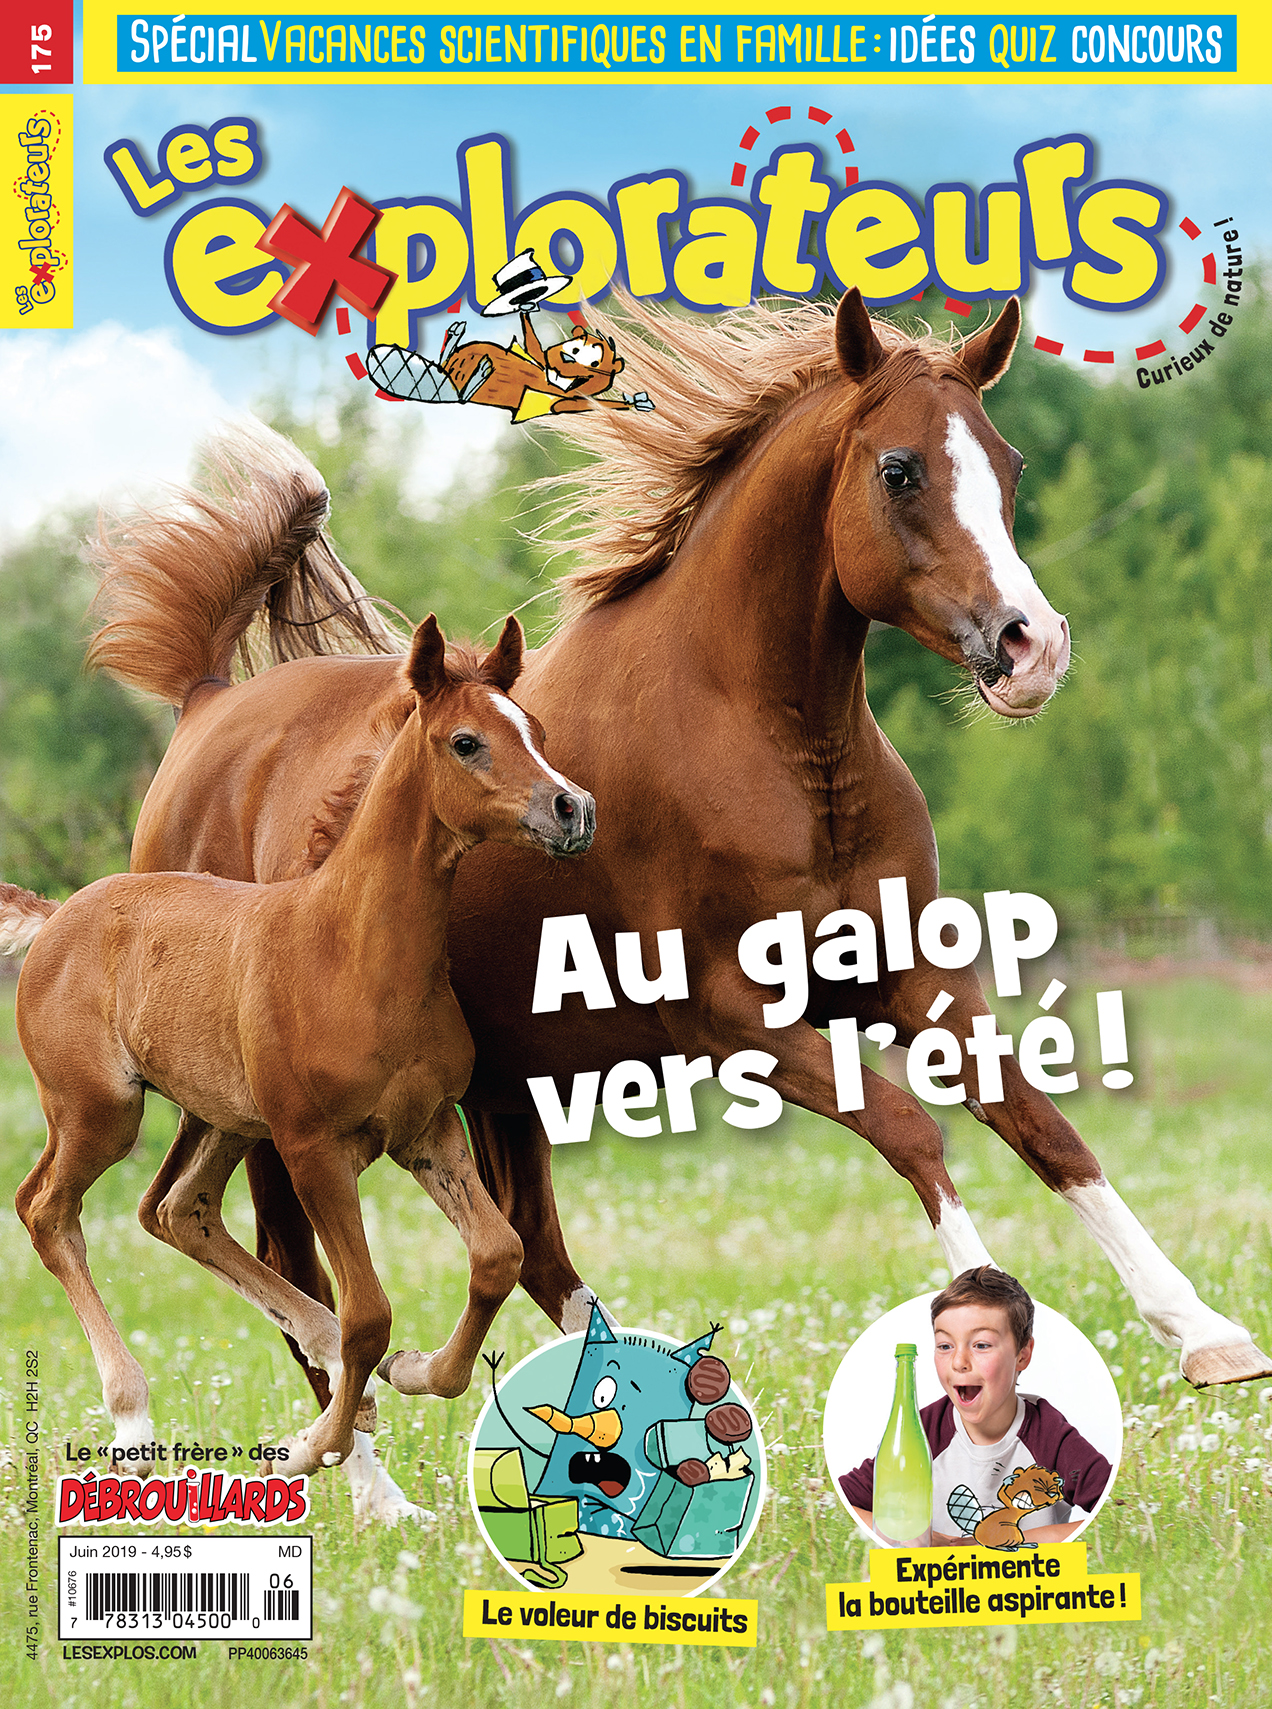 Les Explorateurs, no 175, Juin 2019